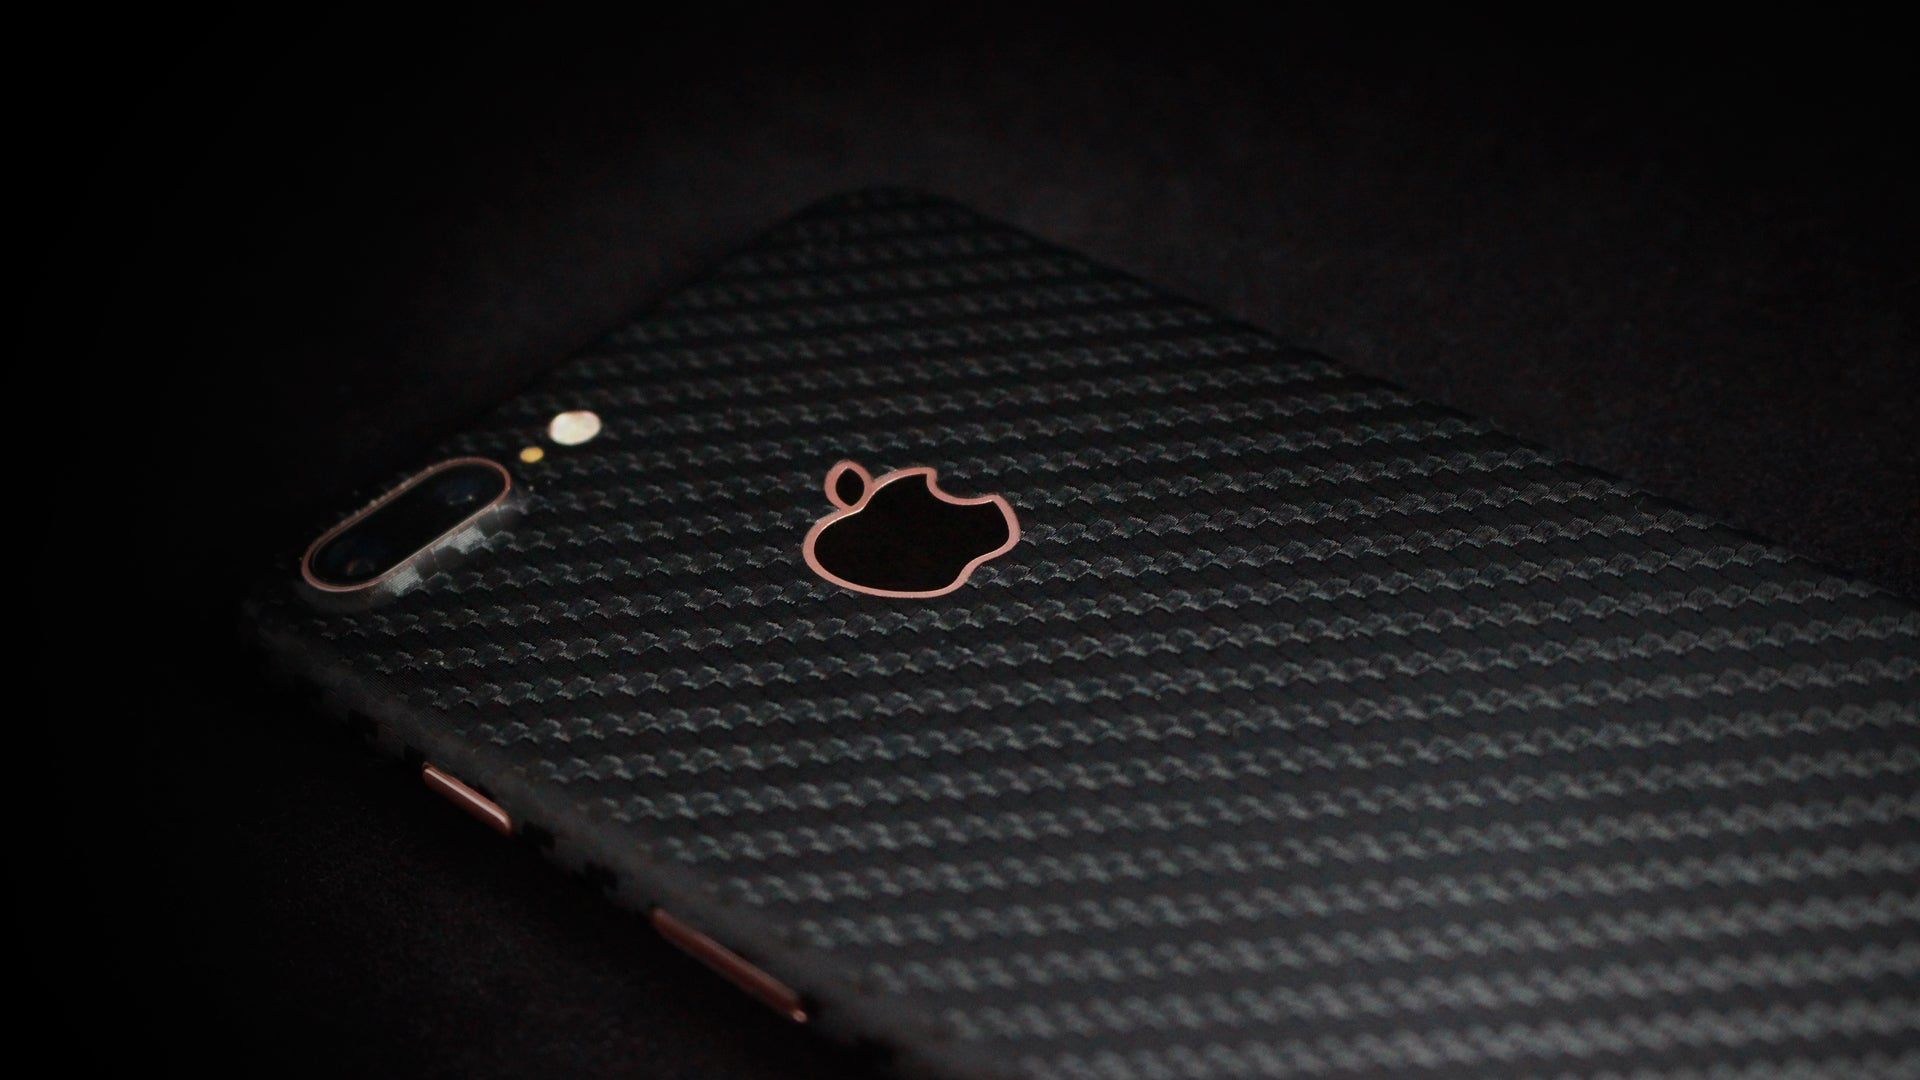 iPhone 7 Plus Black Carbon Skin